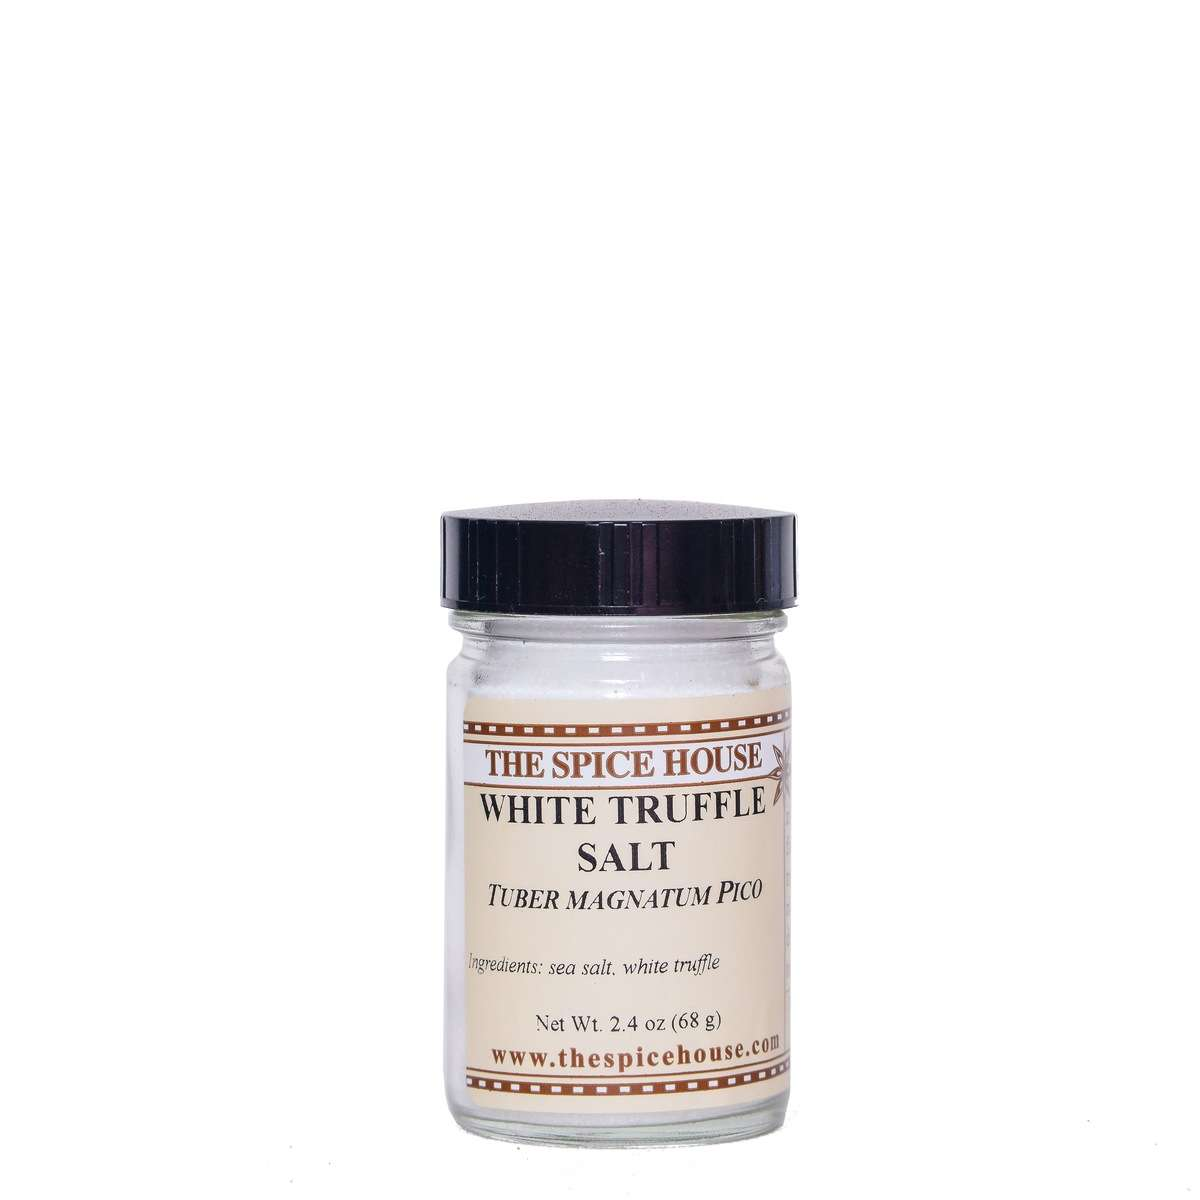 white truffle sea salt is a great stocking stuffer and adds flavor to any meal